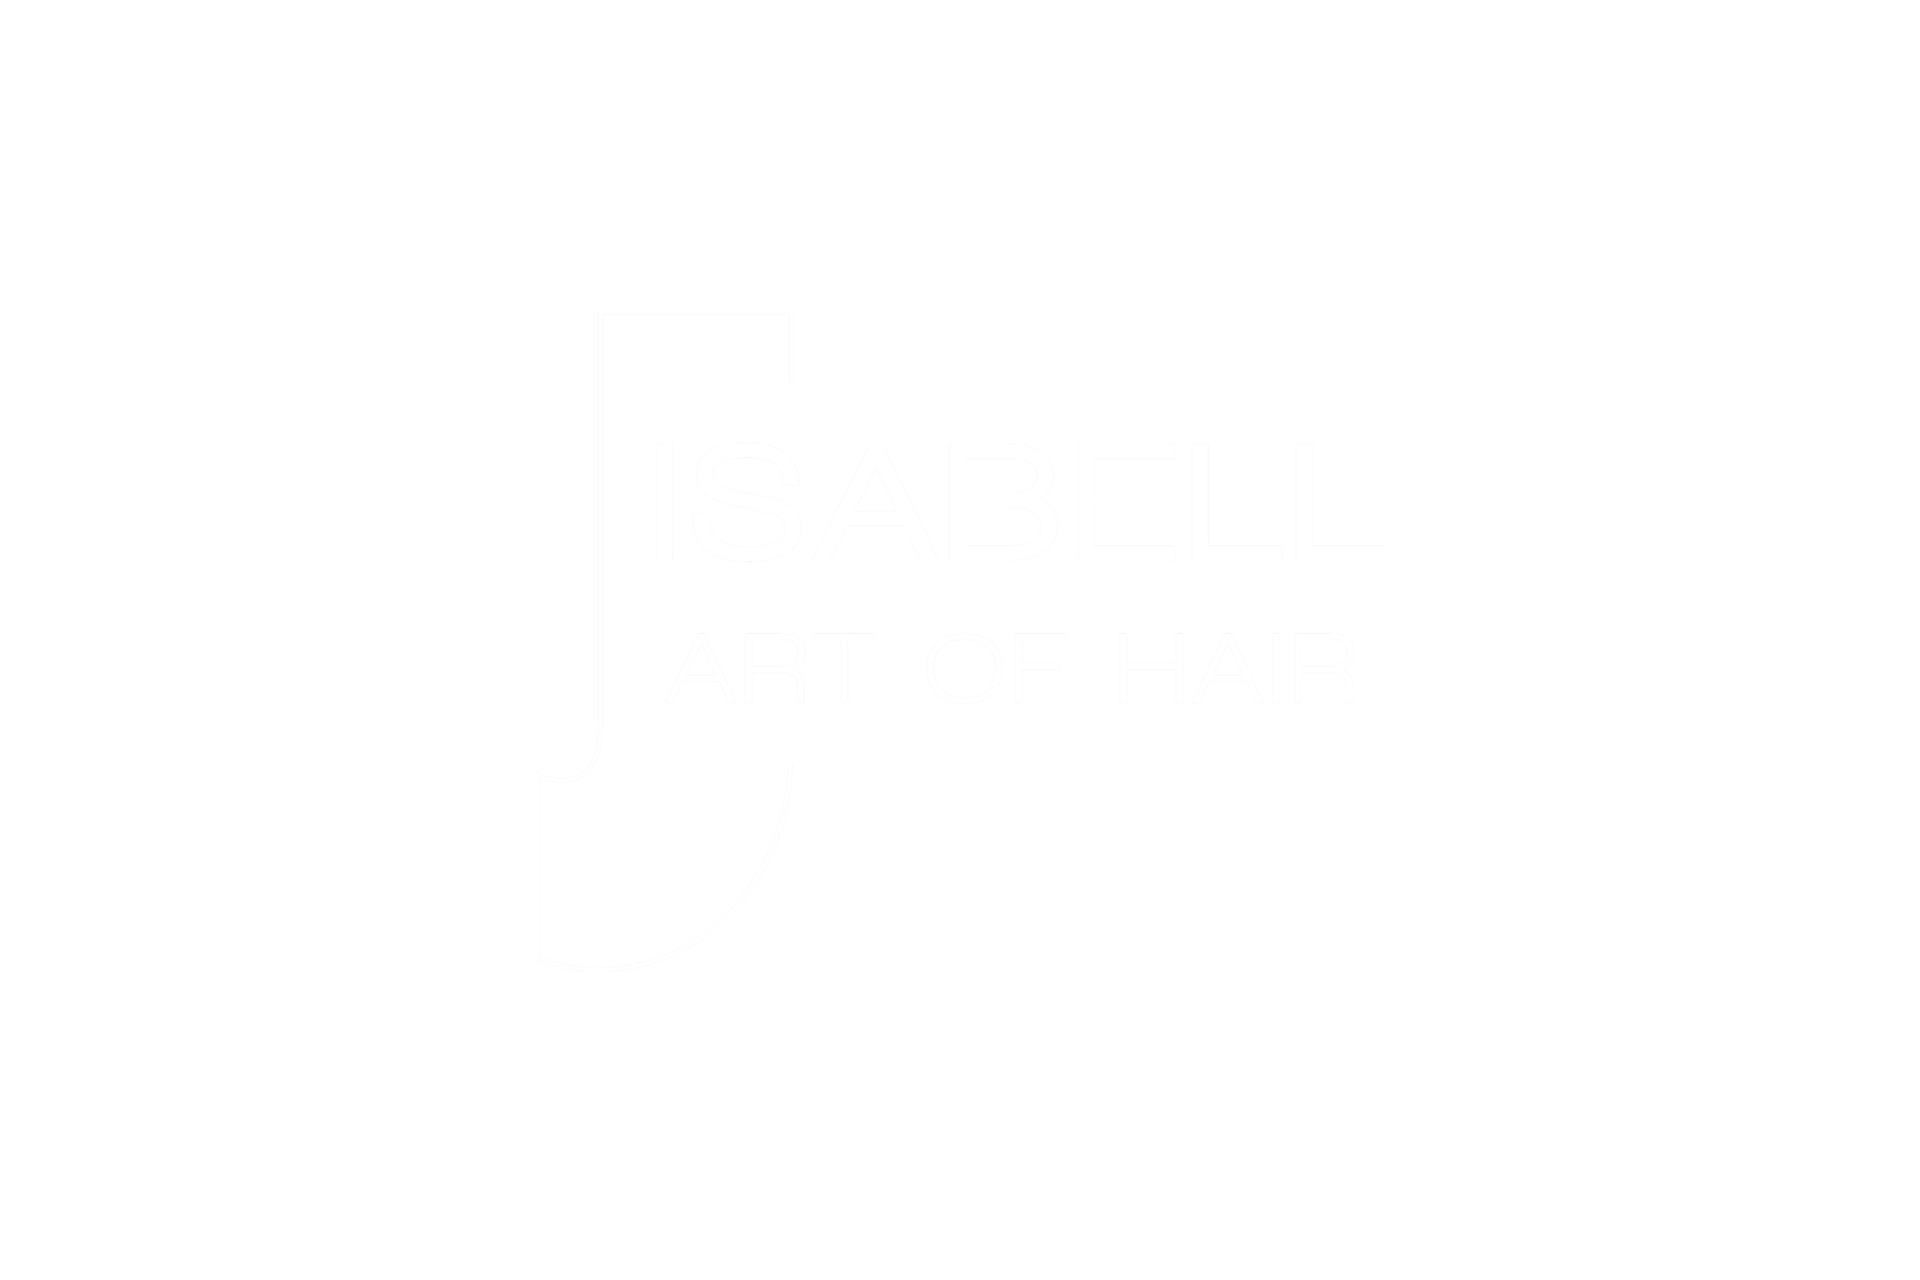 Isabell Art of Hair - Logo